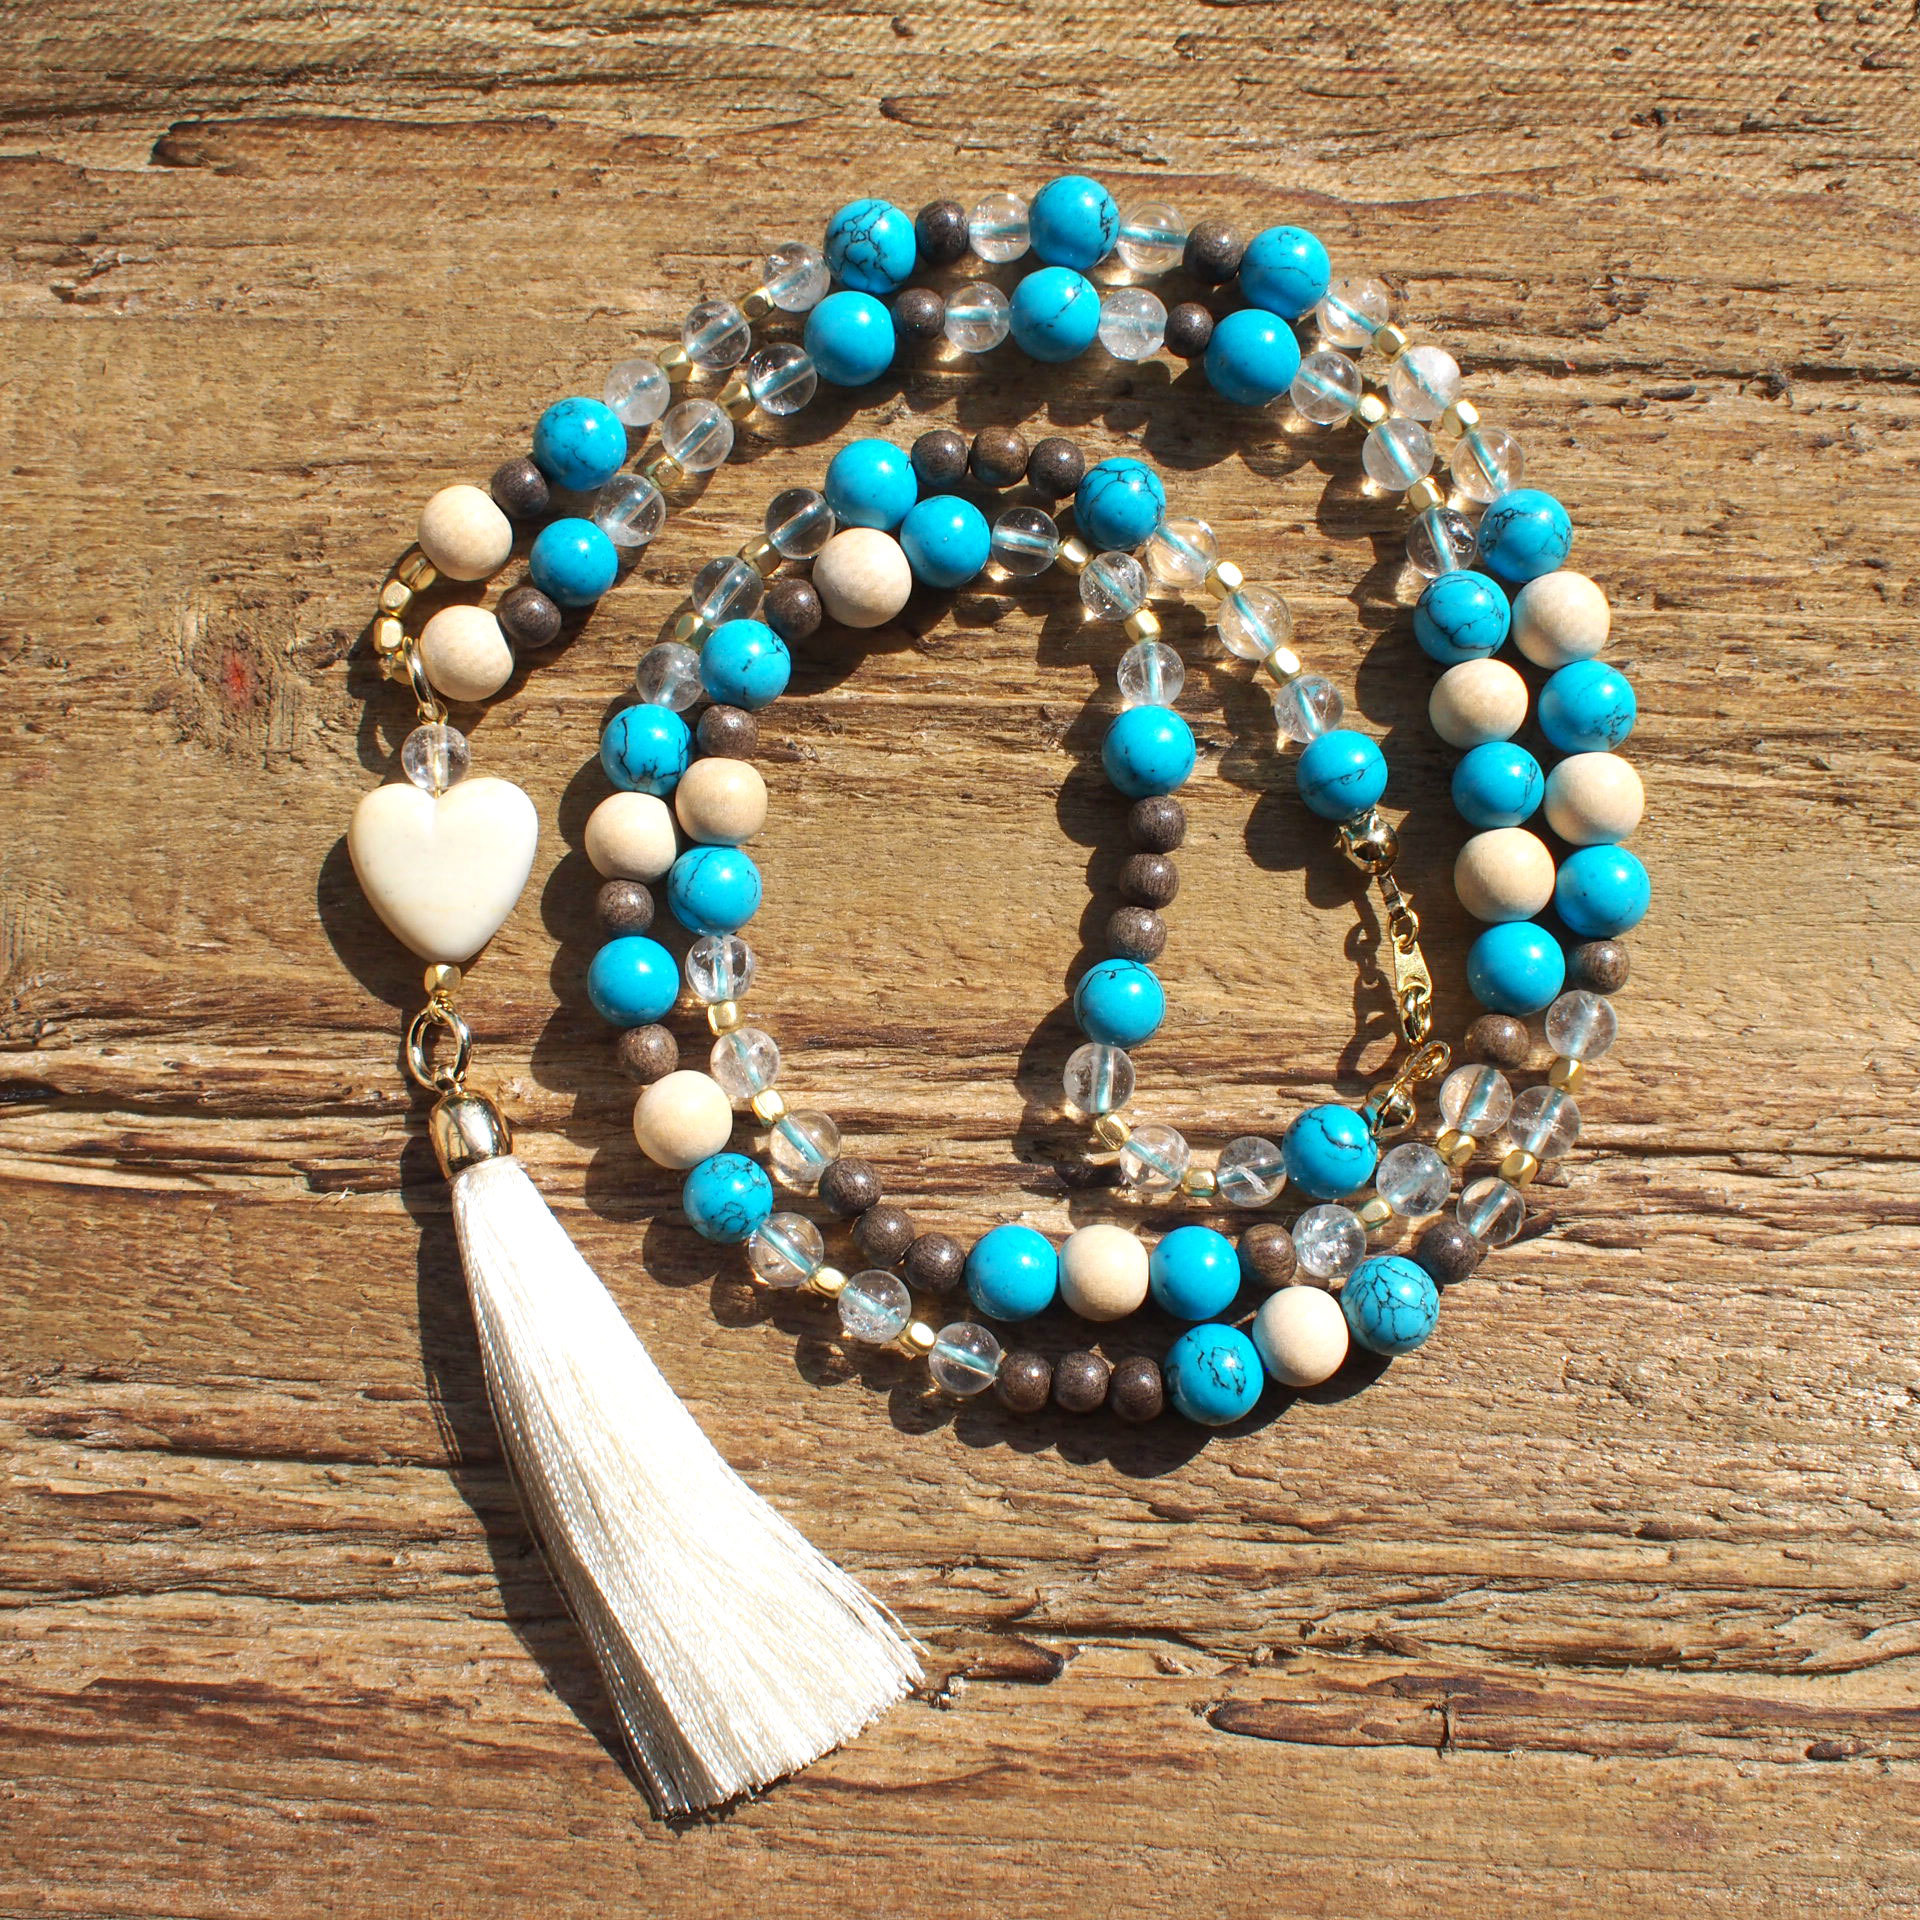 【Turquoise】×【Crystal】 Long Necklace